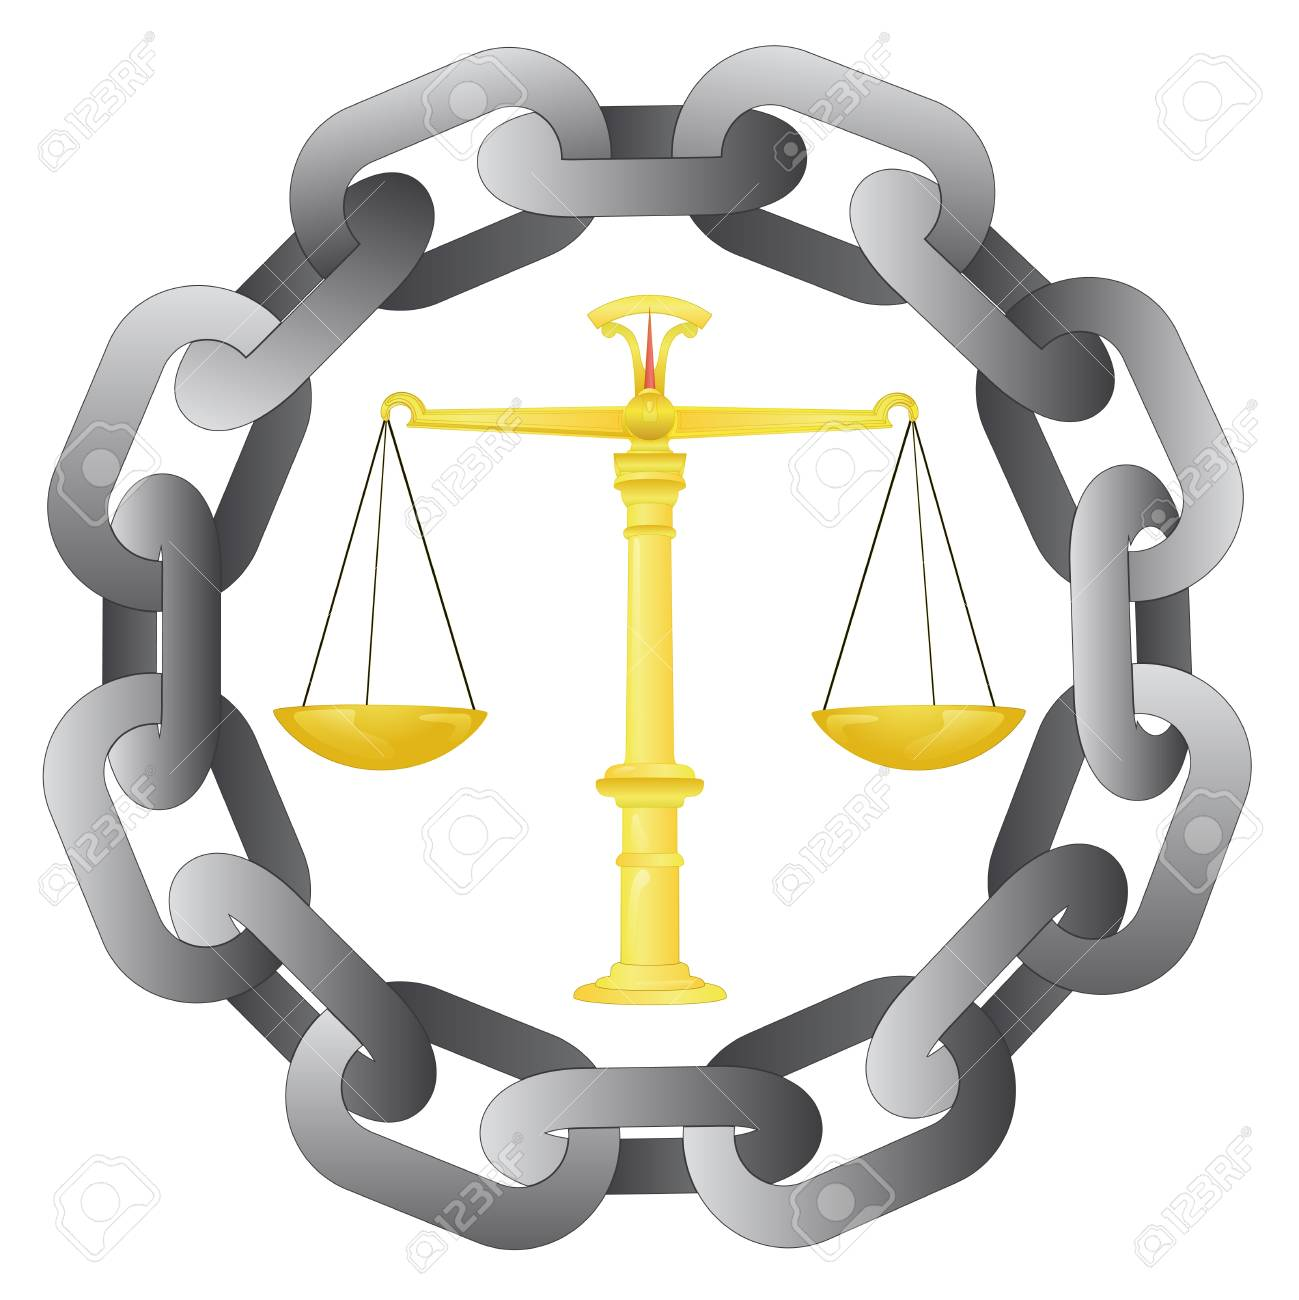 strong chain protect our liberty and justice Stock Vector - 21660029